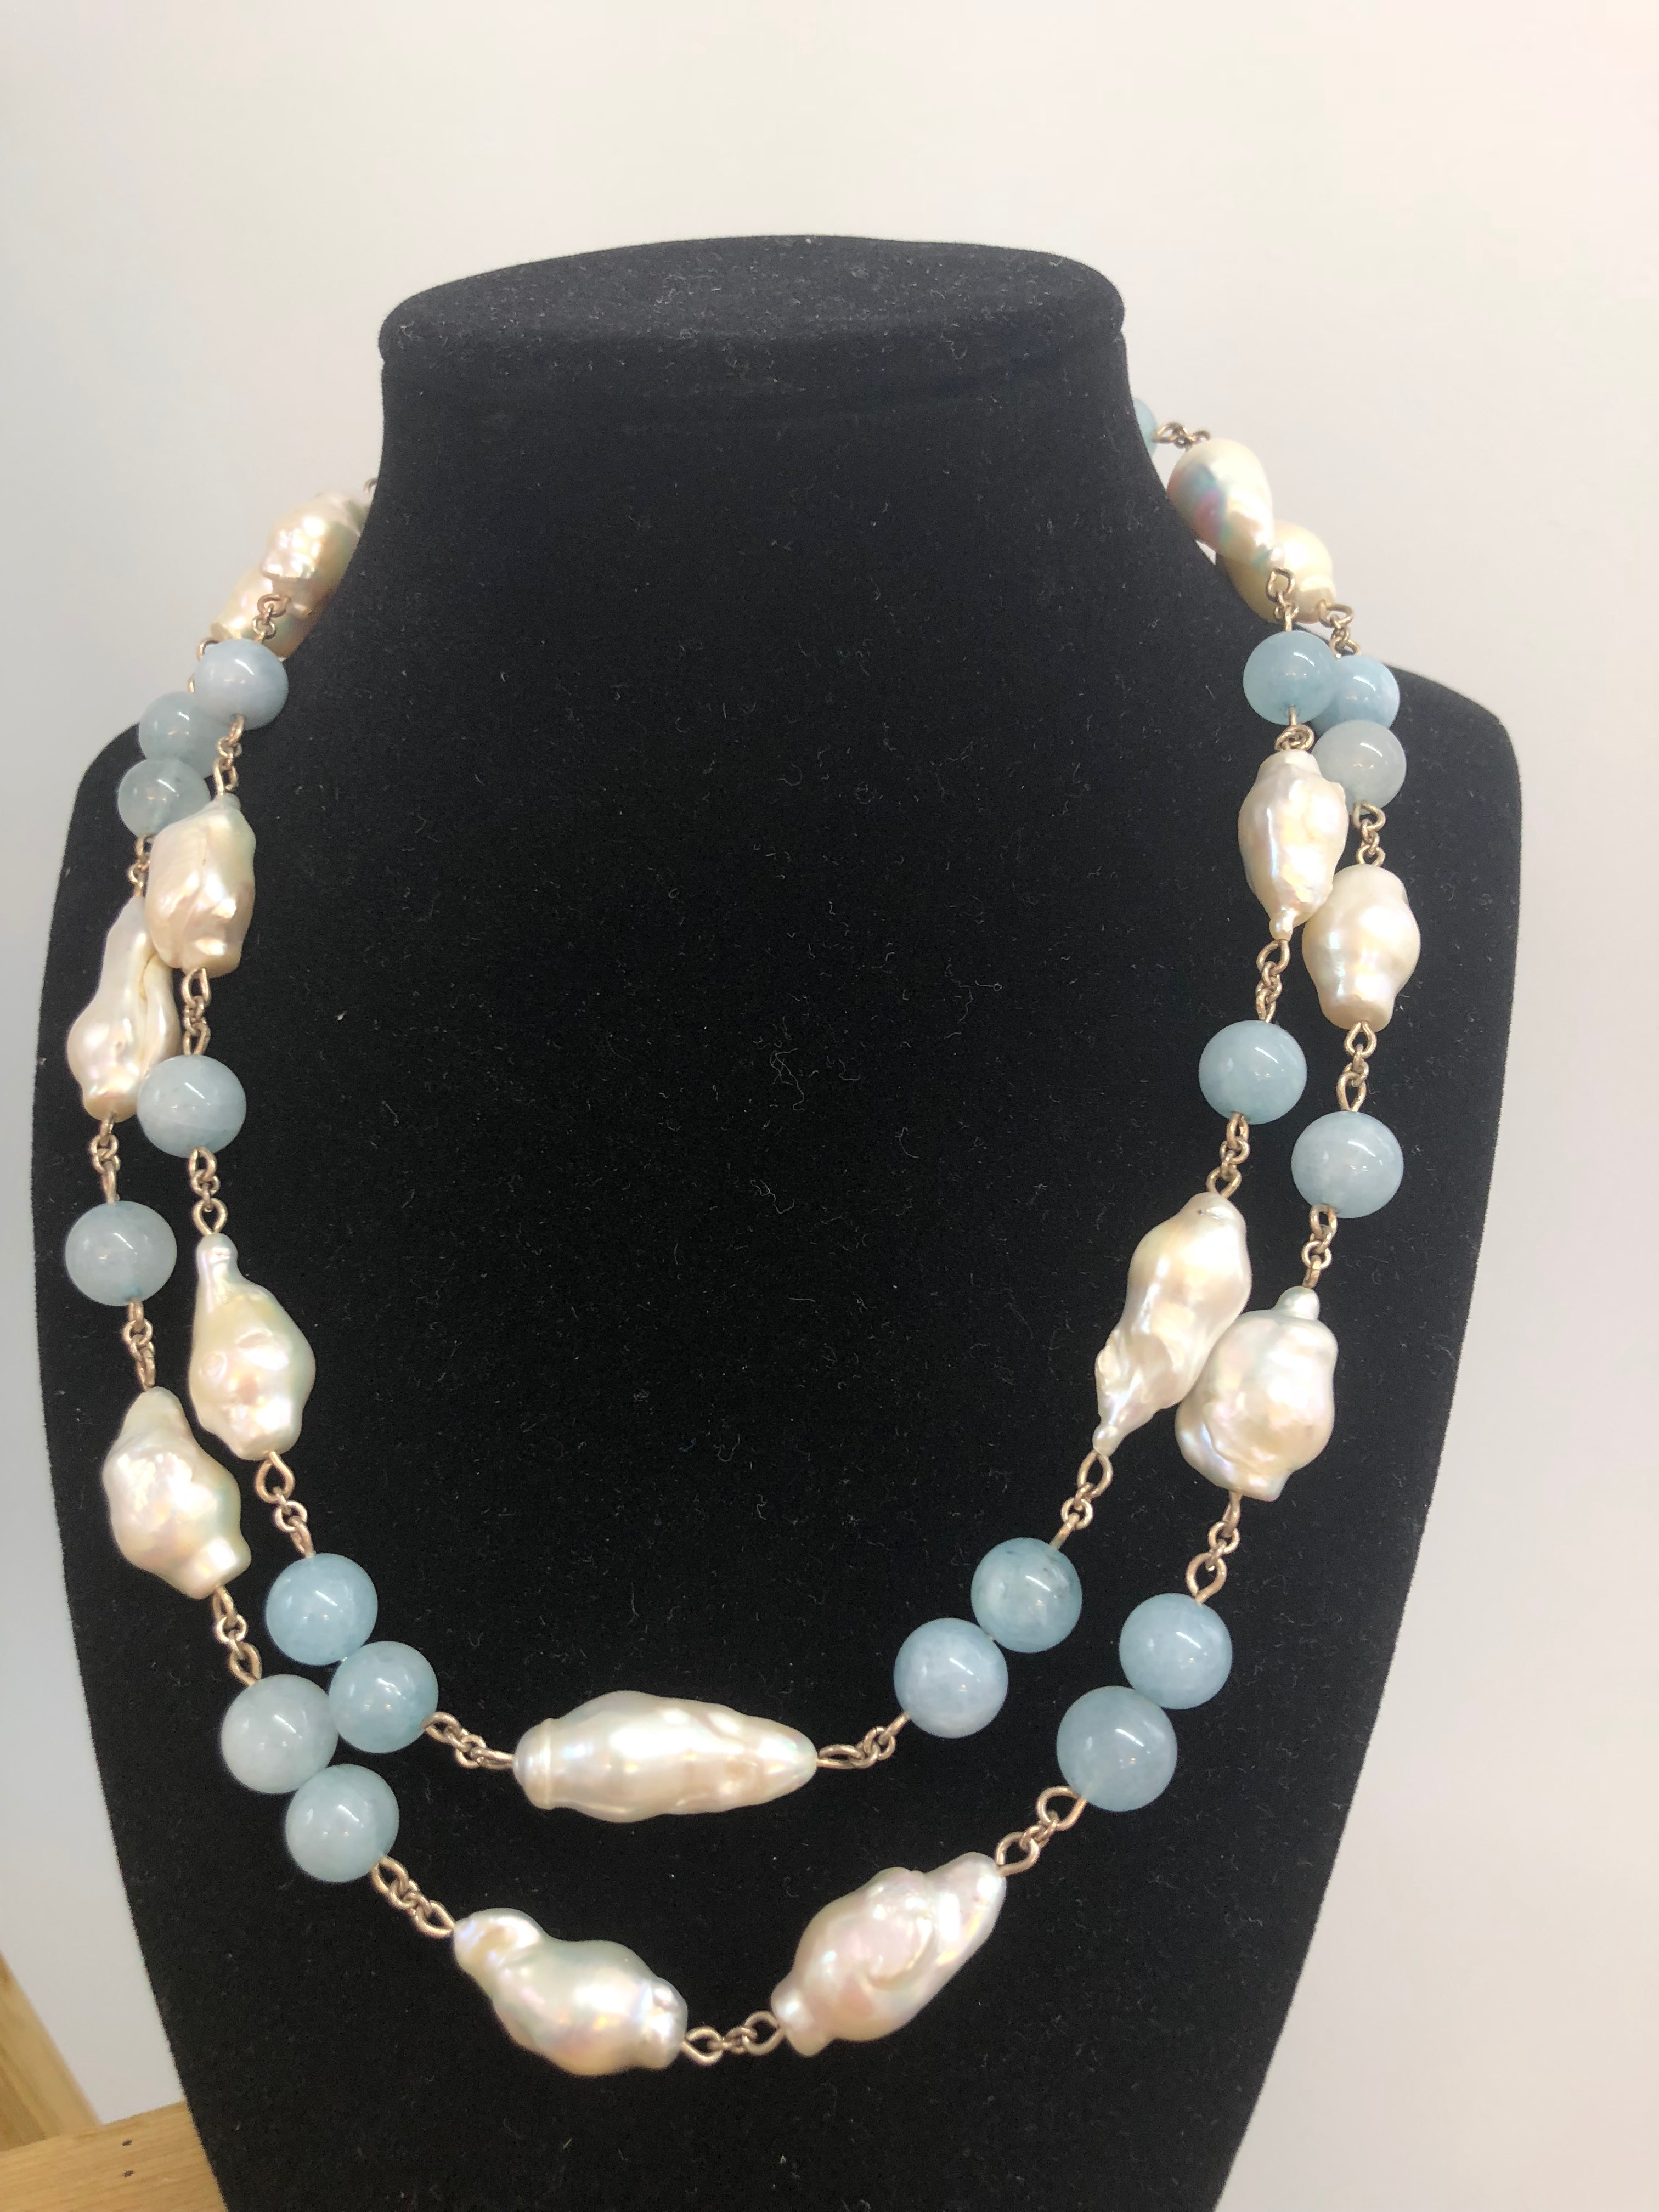 Sterling Silver Double Strand Necklace w/Freshwater Baroque Pearls & 7mm Aquamarine balls